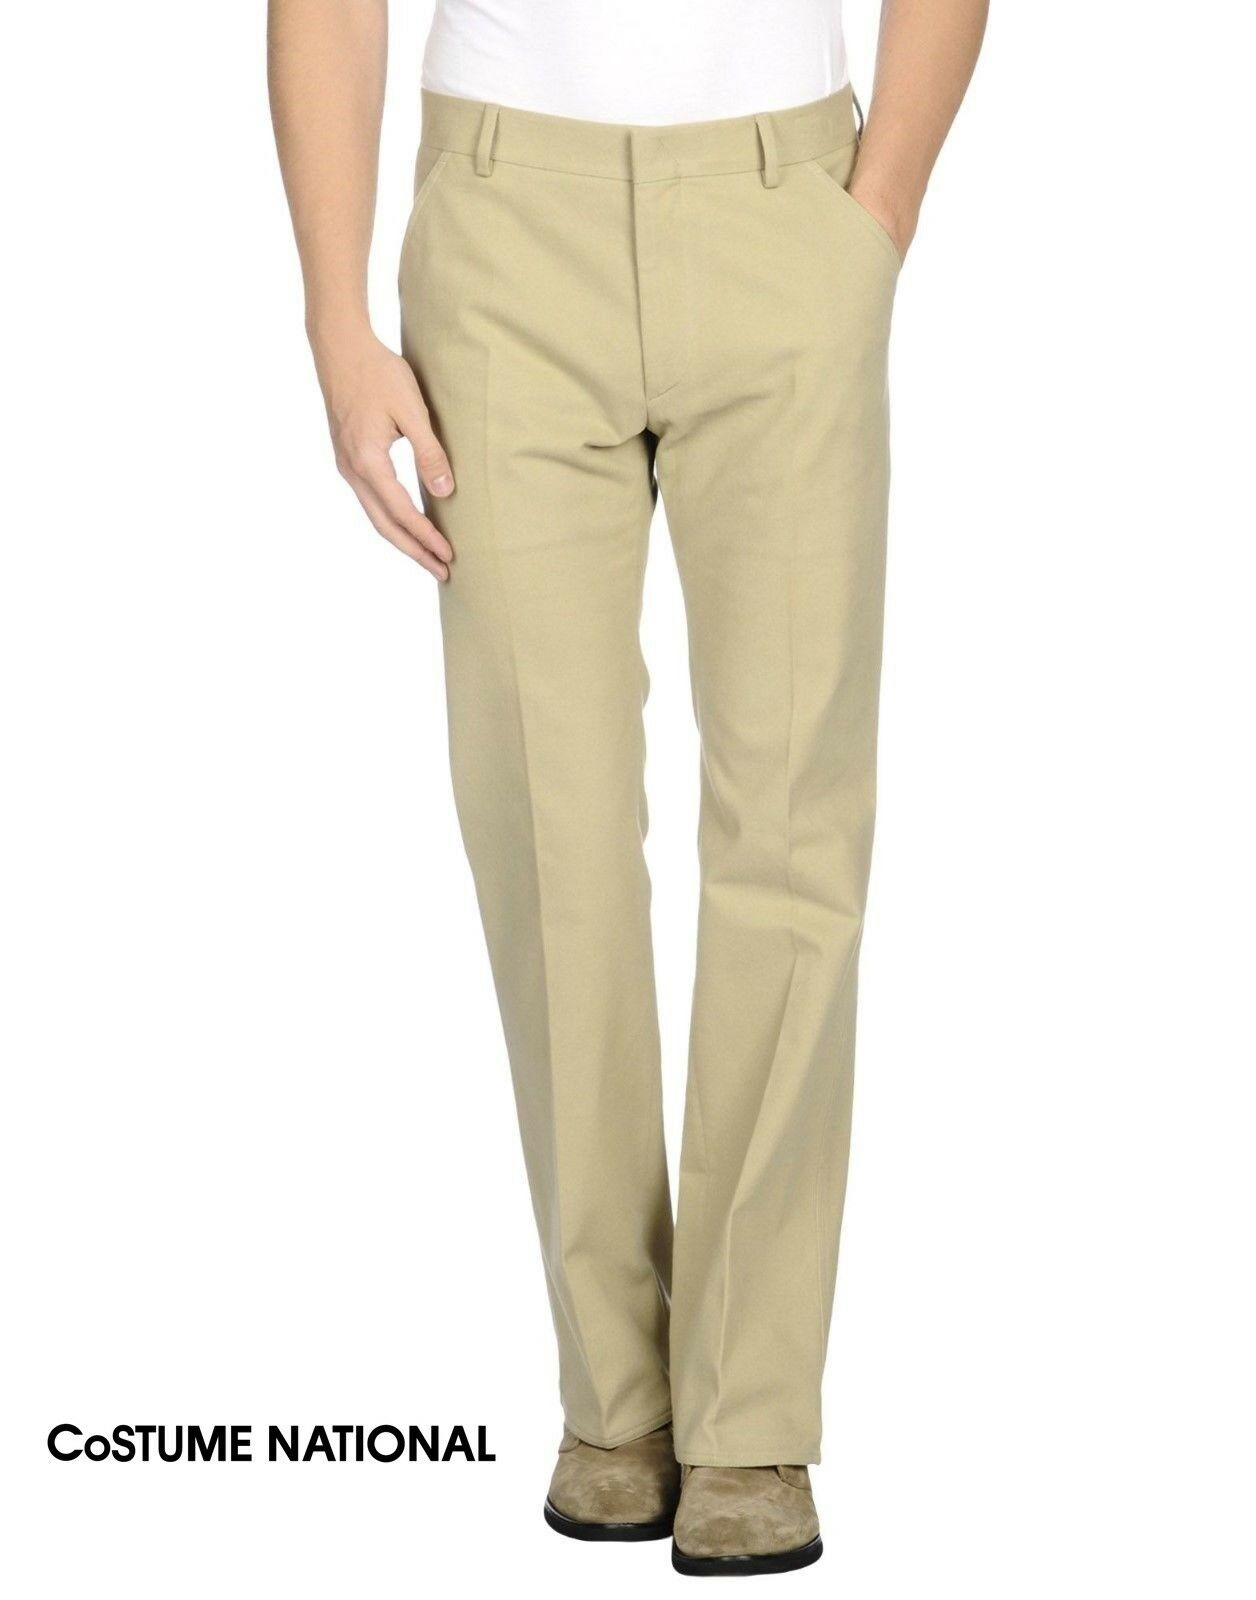 Costume National Homme Light Beige Trousers Pants - W34 L32